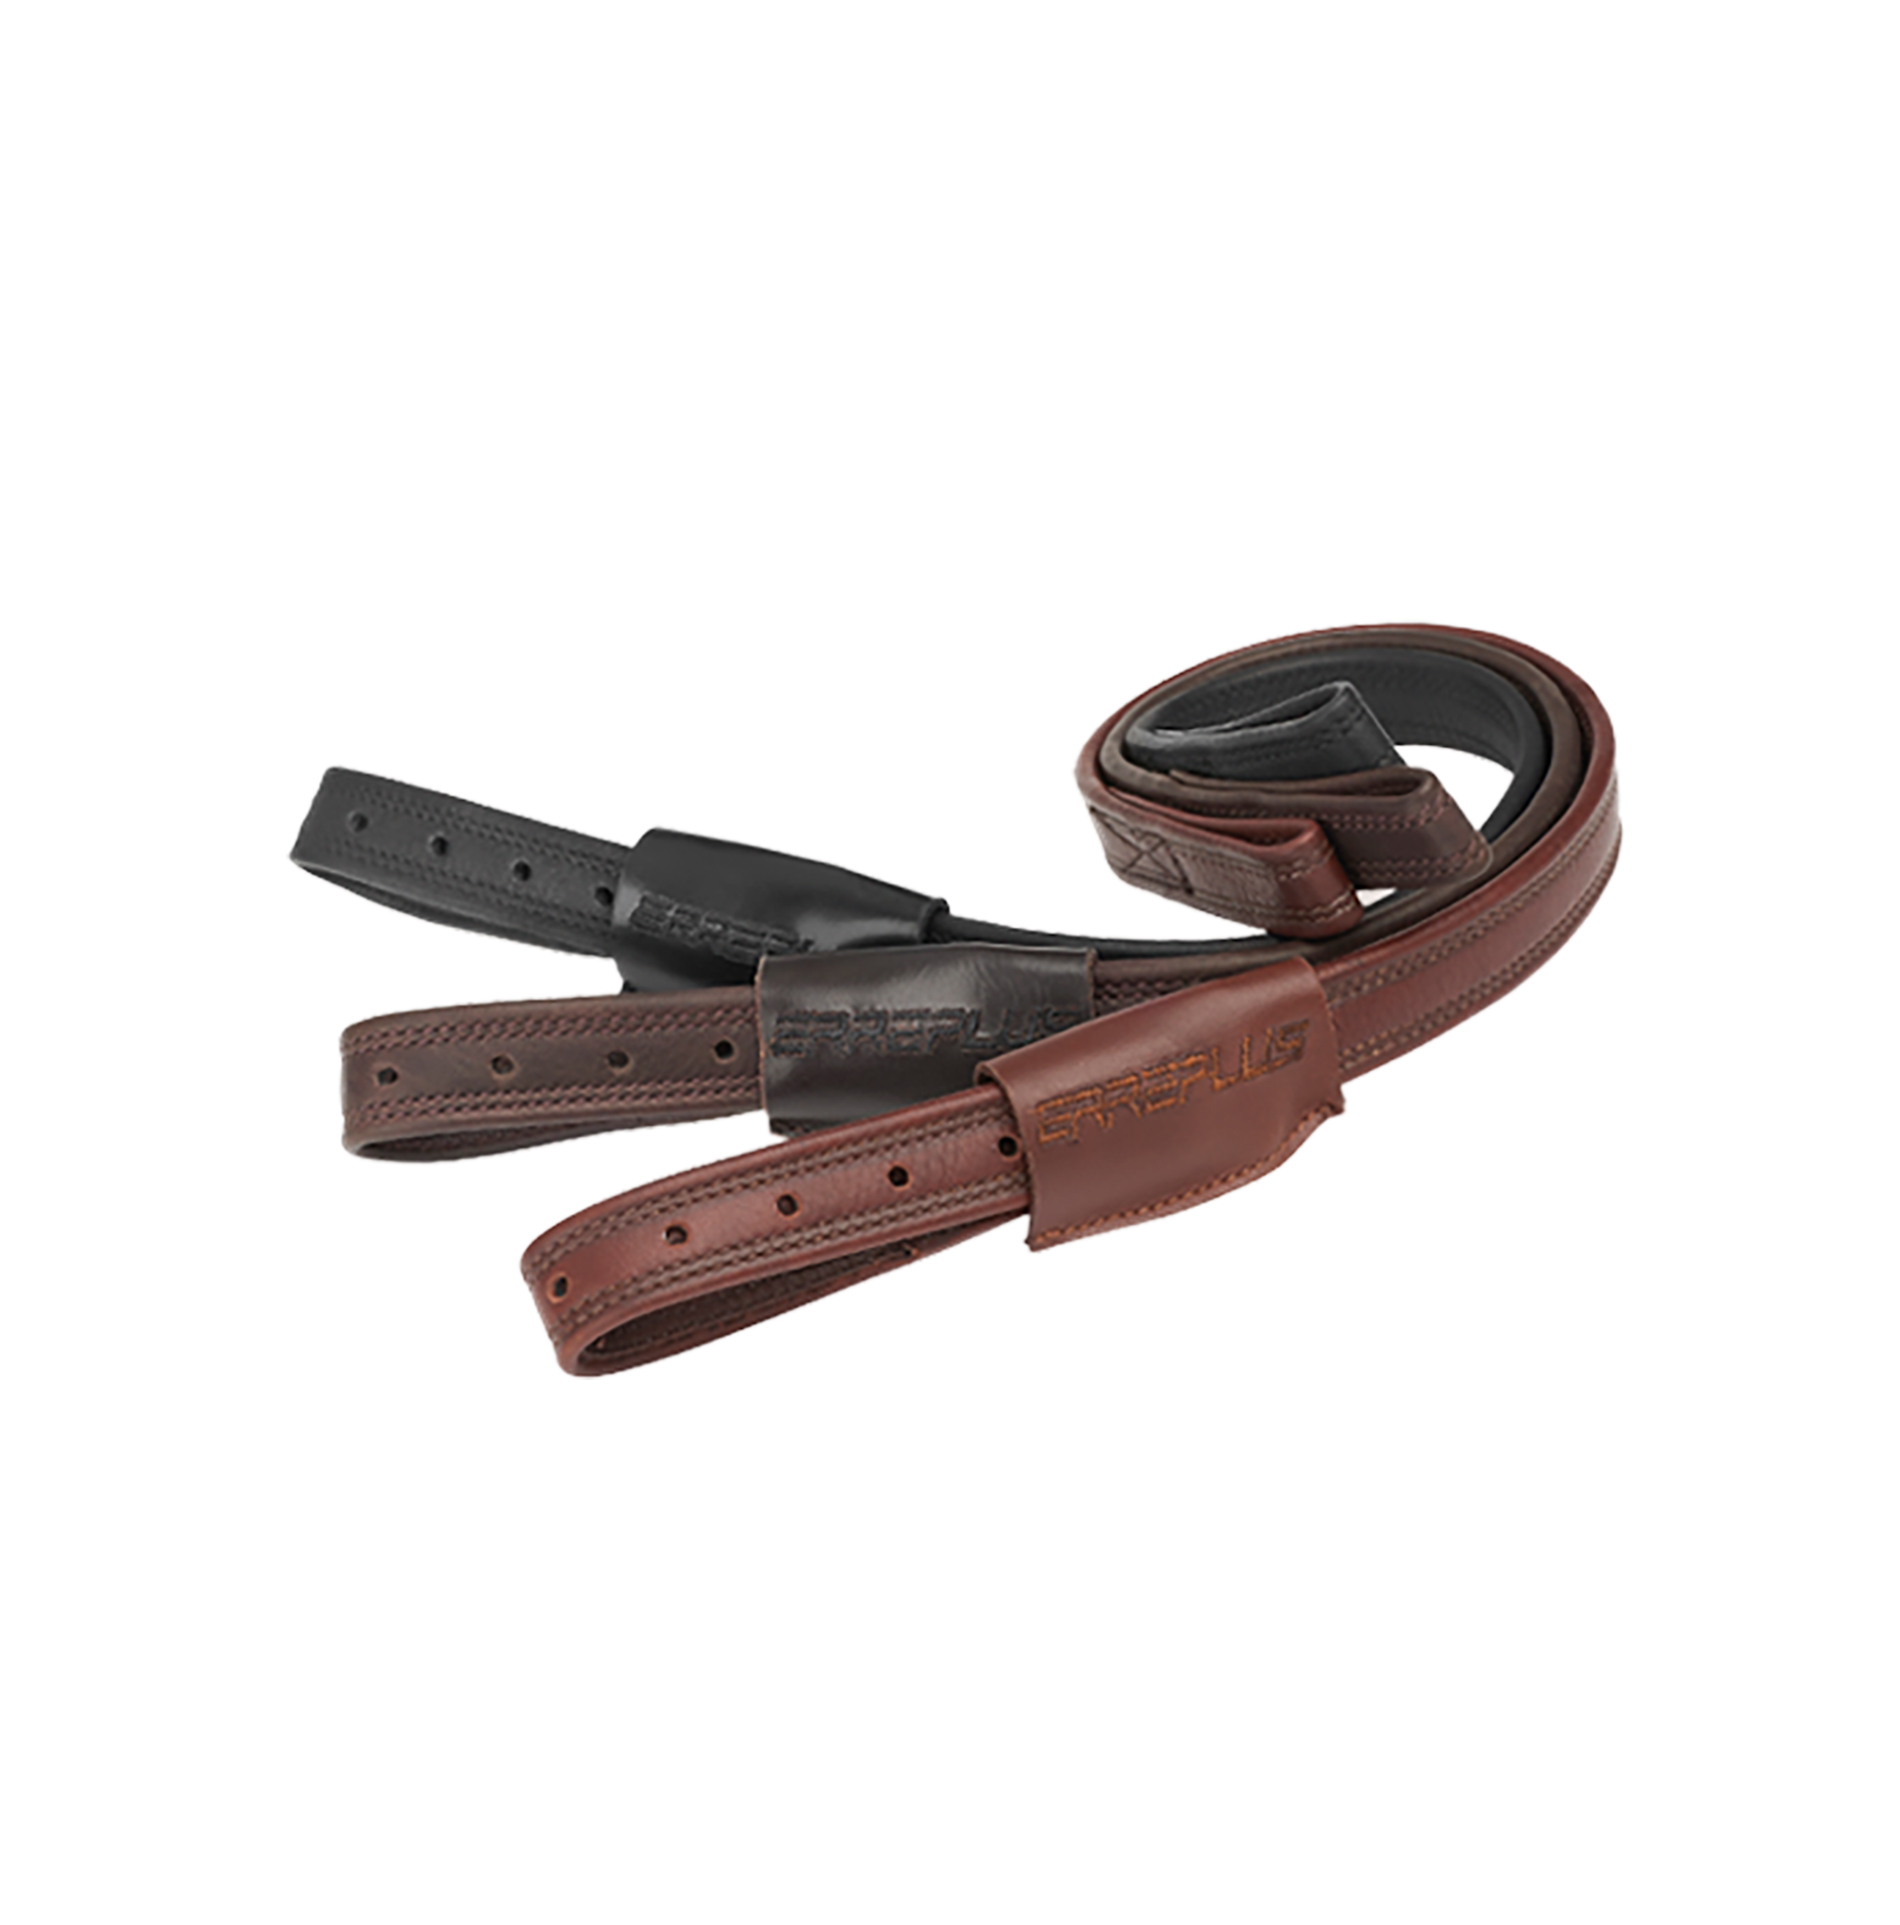 Softy English Stirrup Leathers Riding Showing Belts Black /& Brown All Sizes SALE